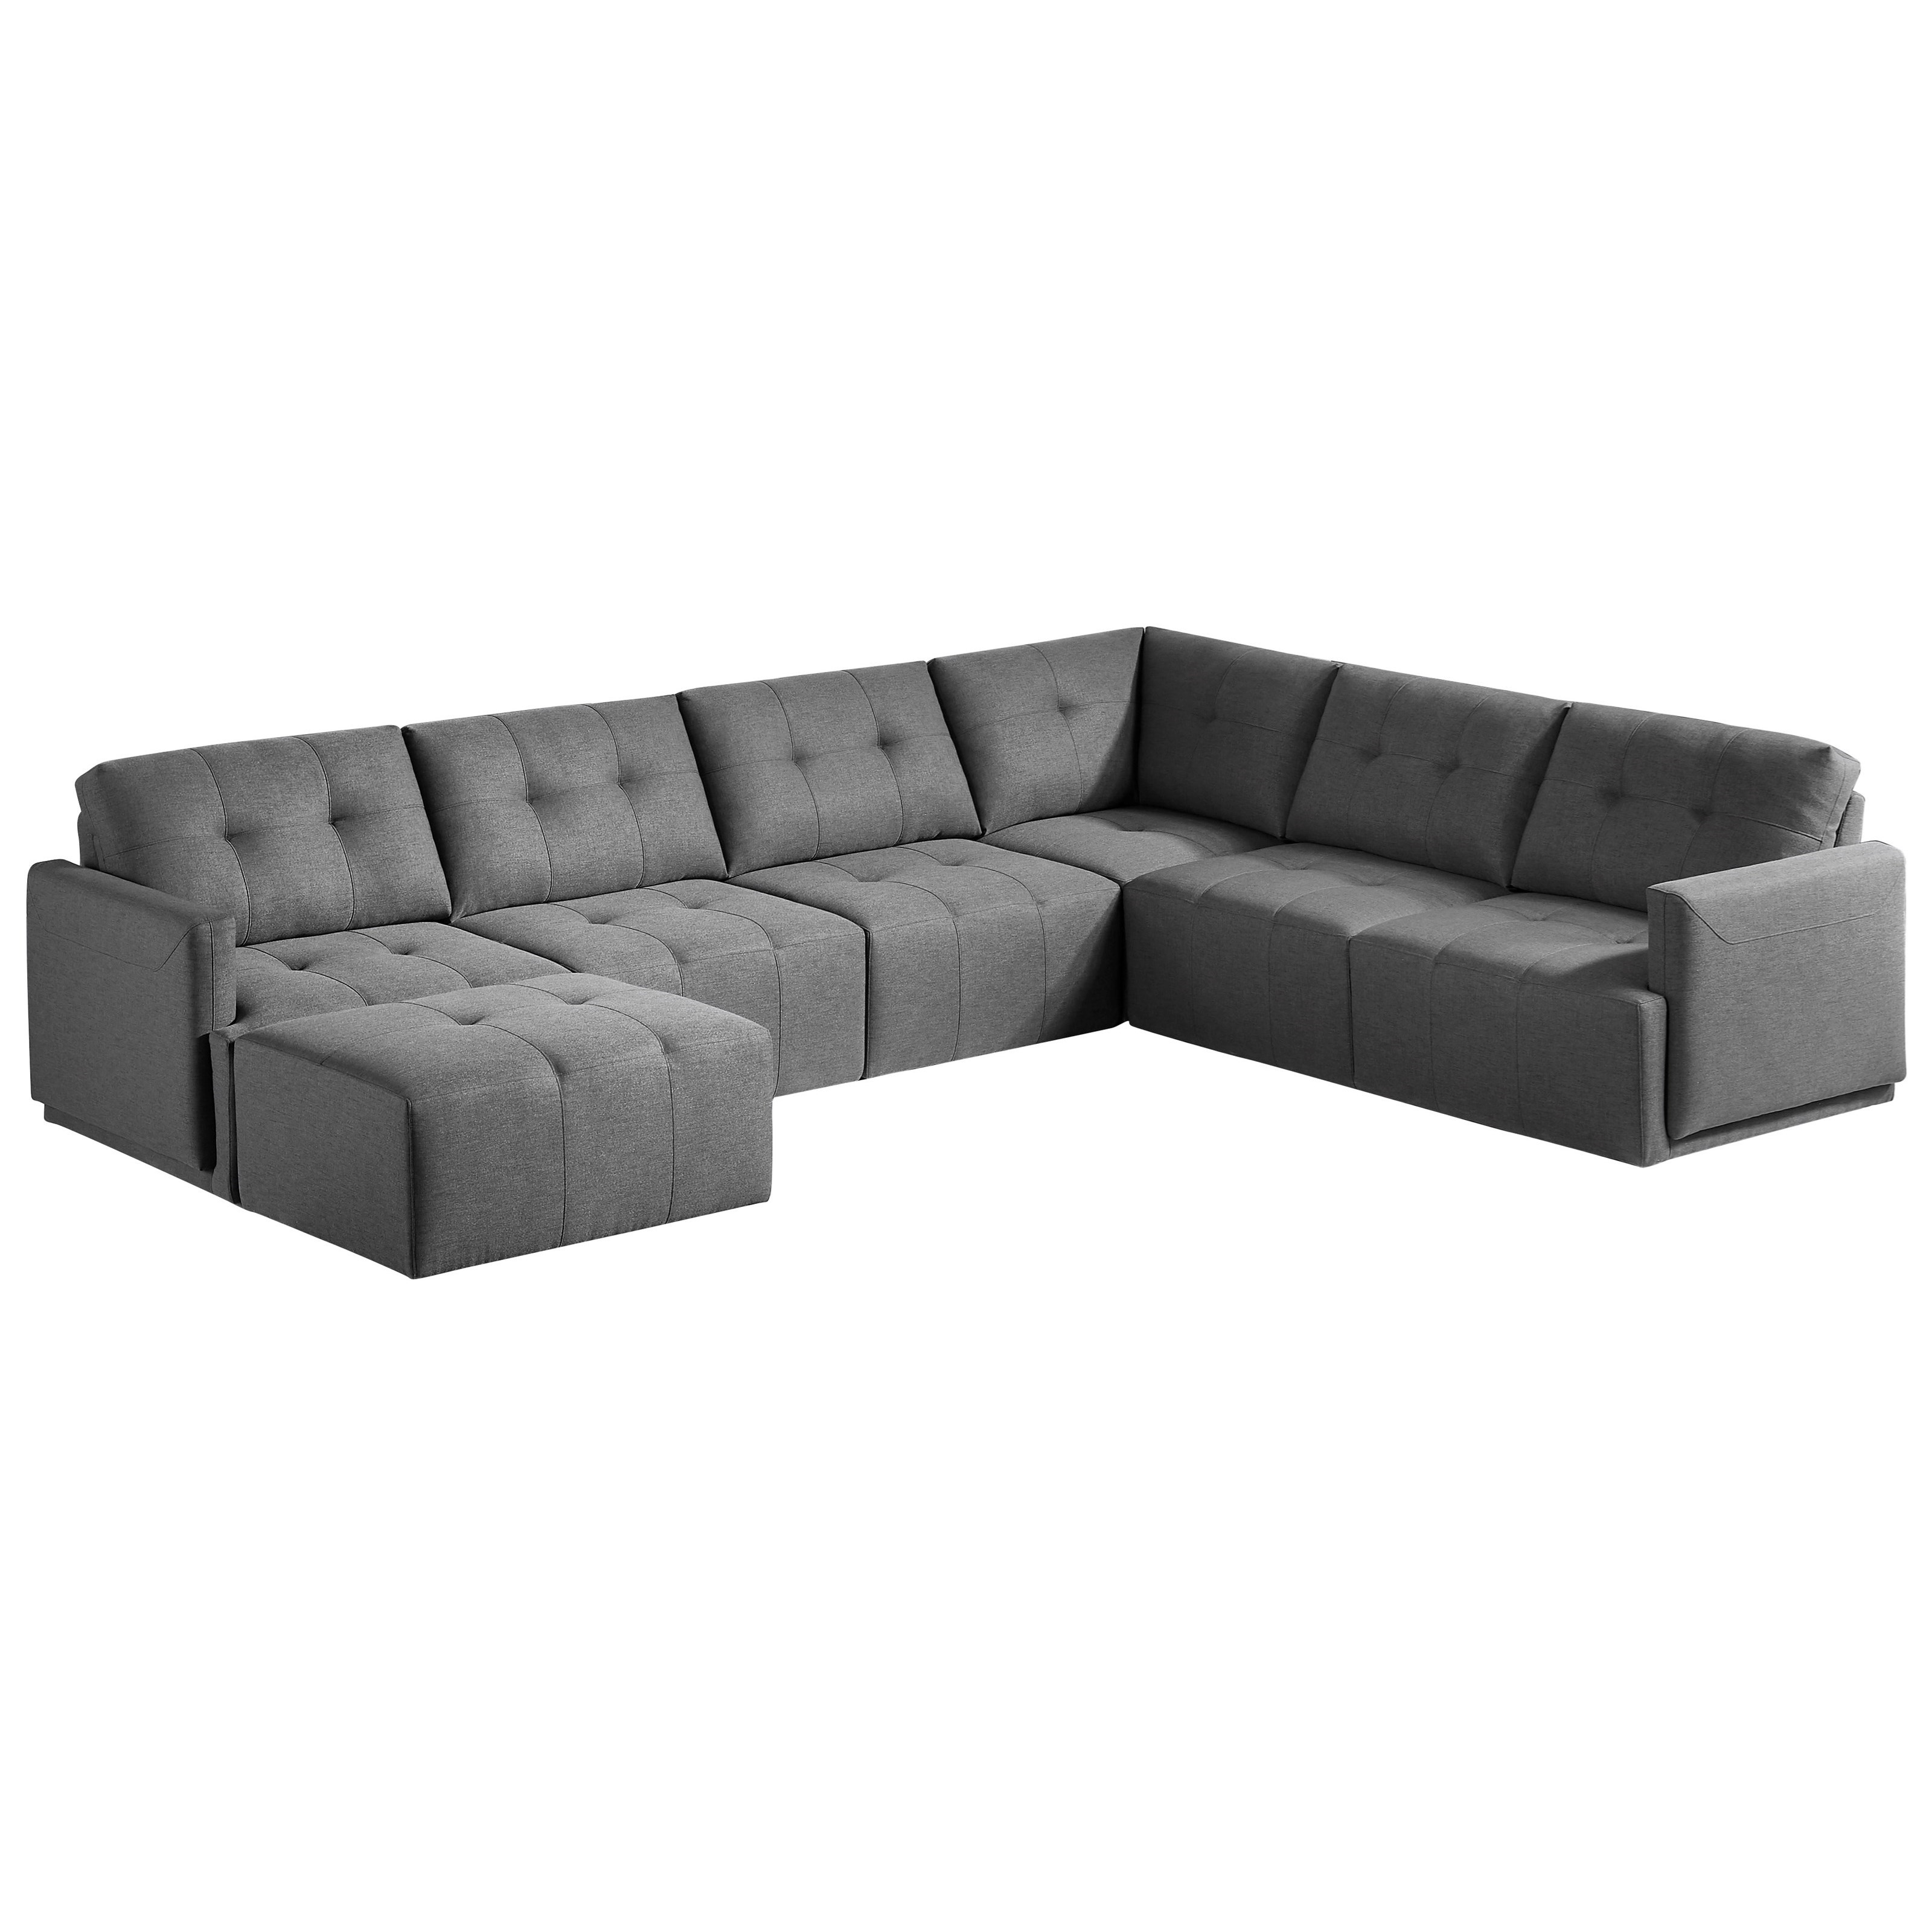 Colony Sectional Sofa by New Classic at Wilcox Furniture